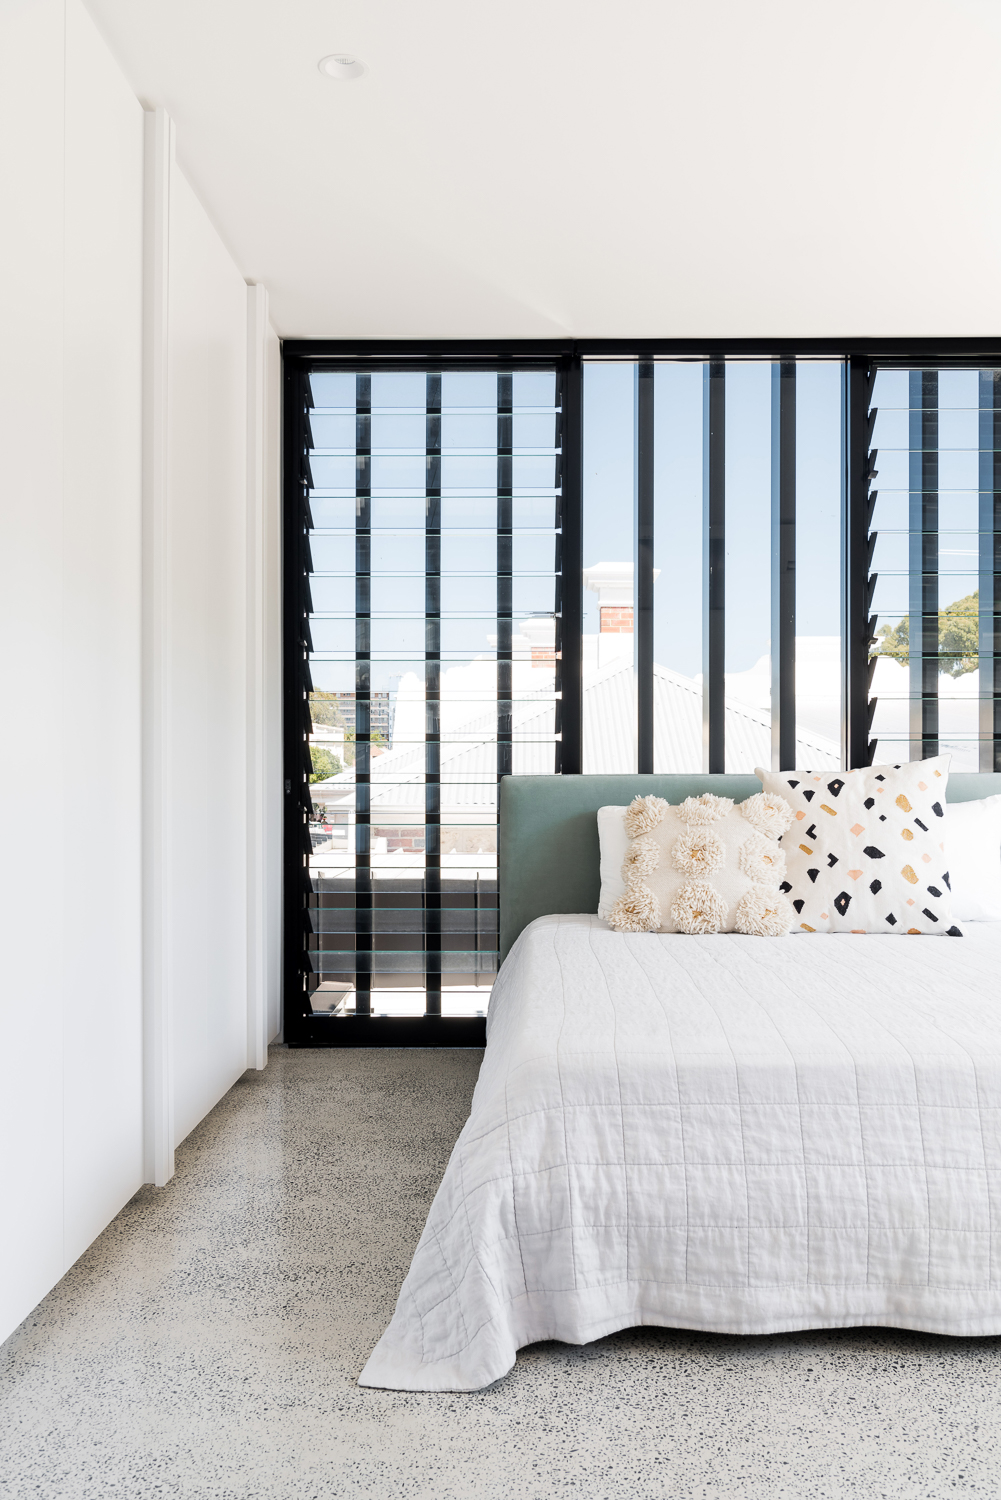 King George by Robeson Architects - Bedroom